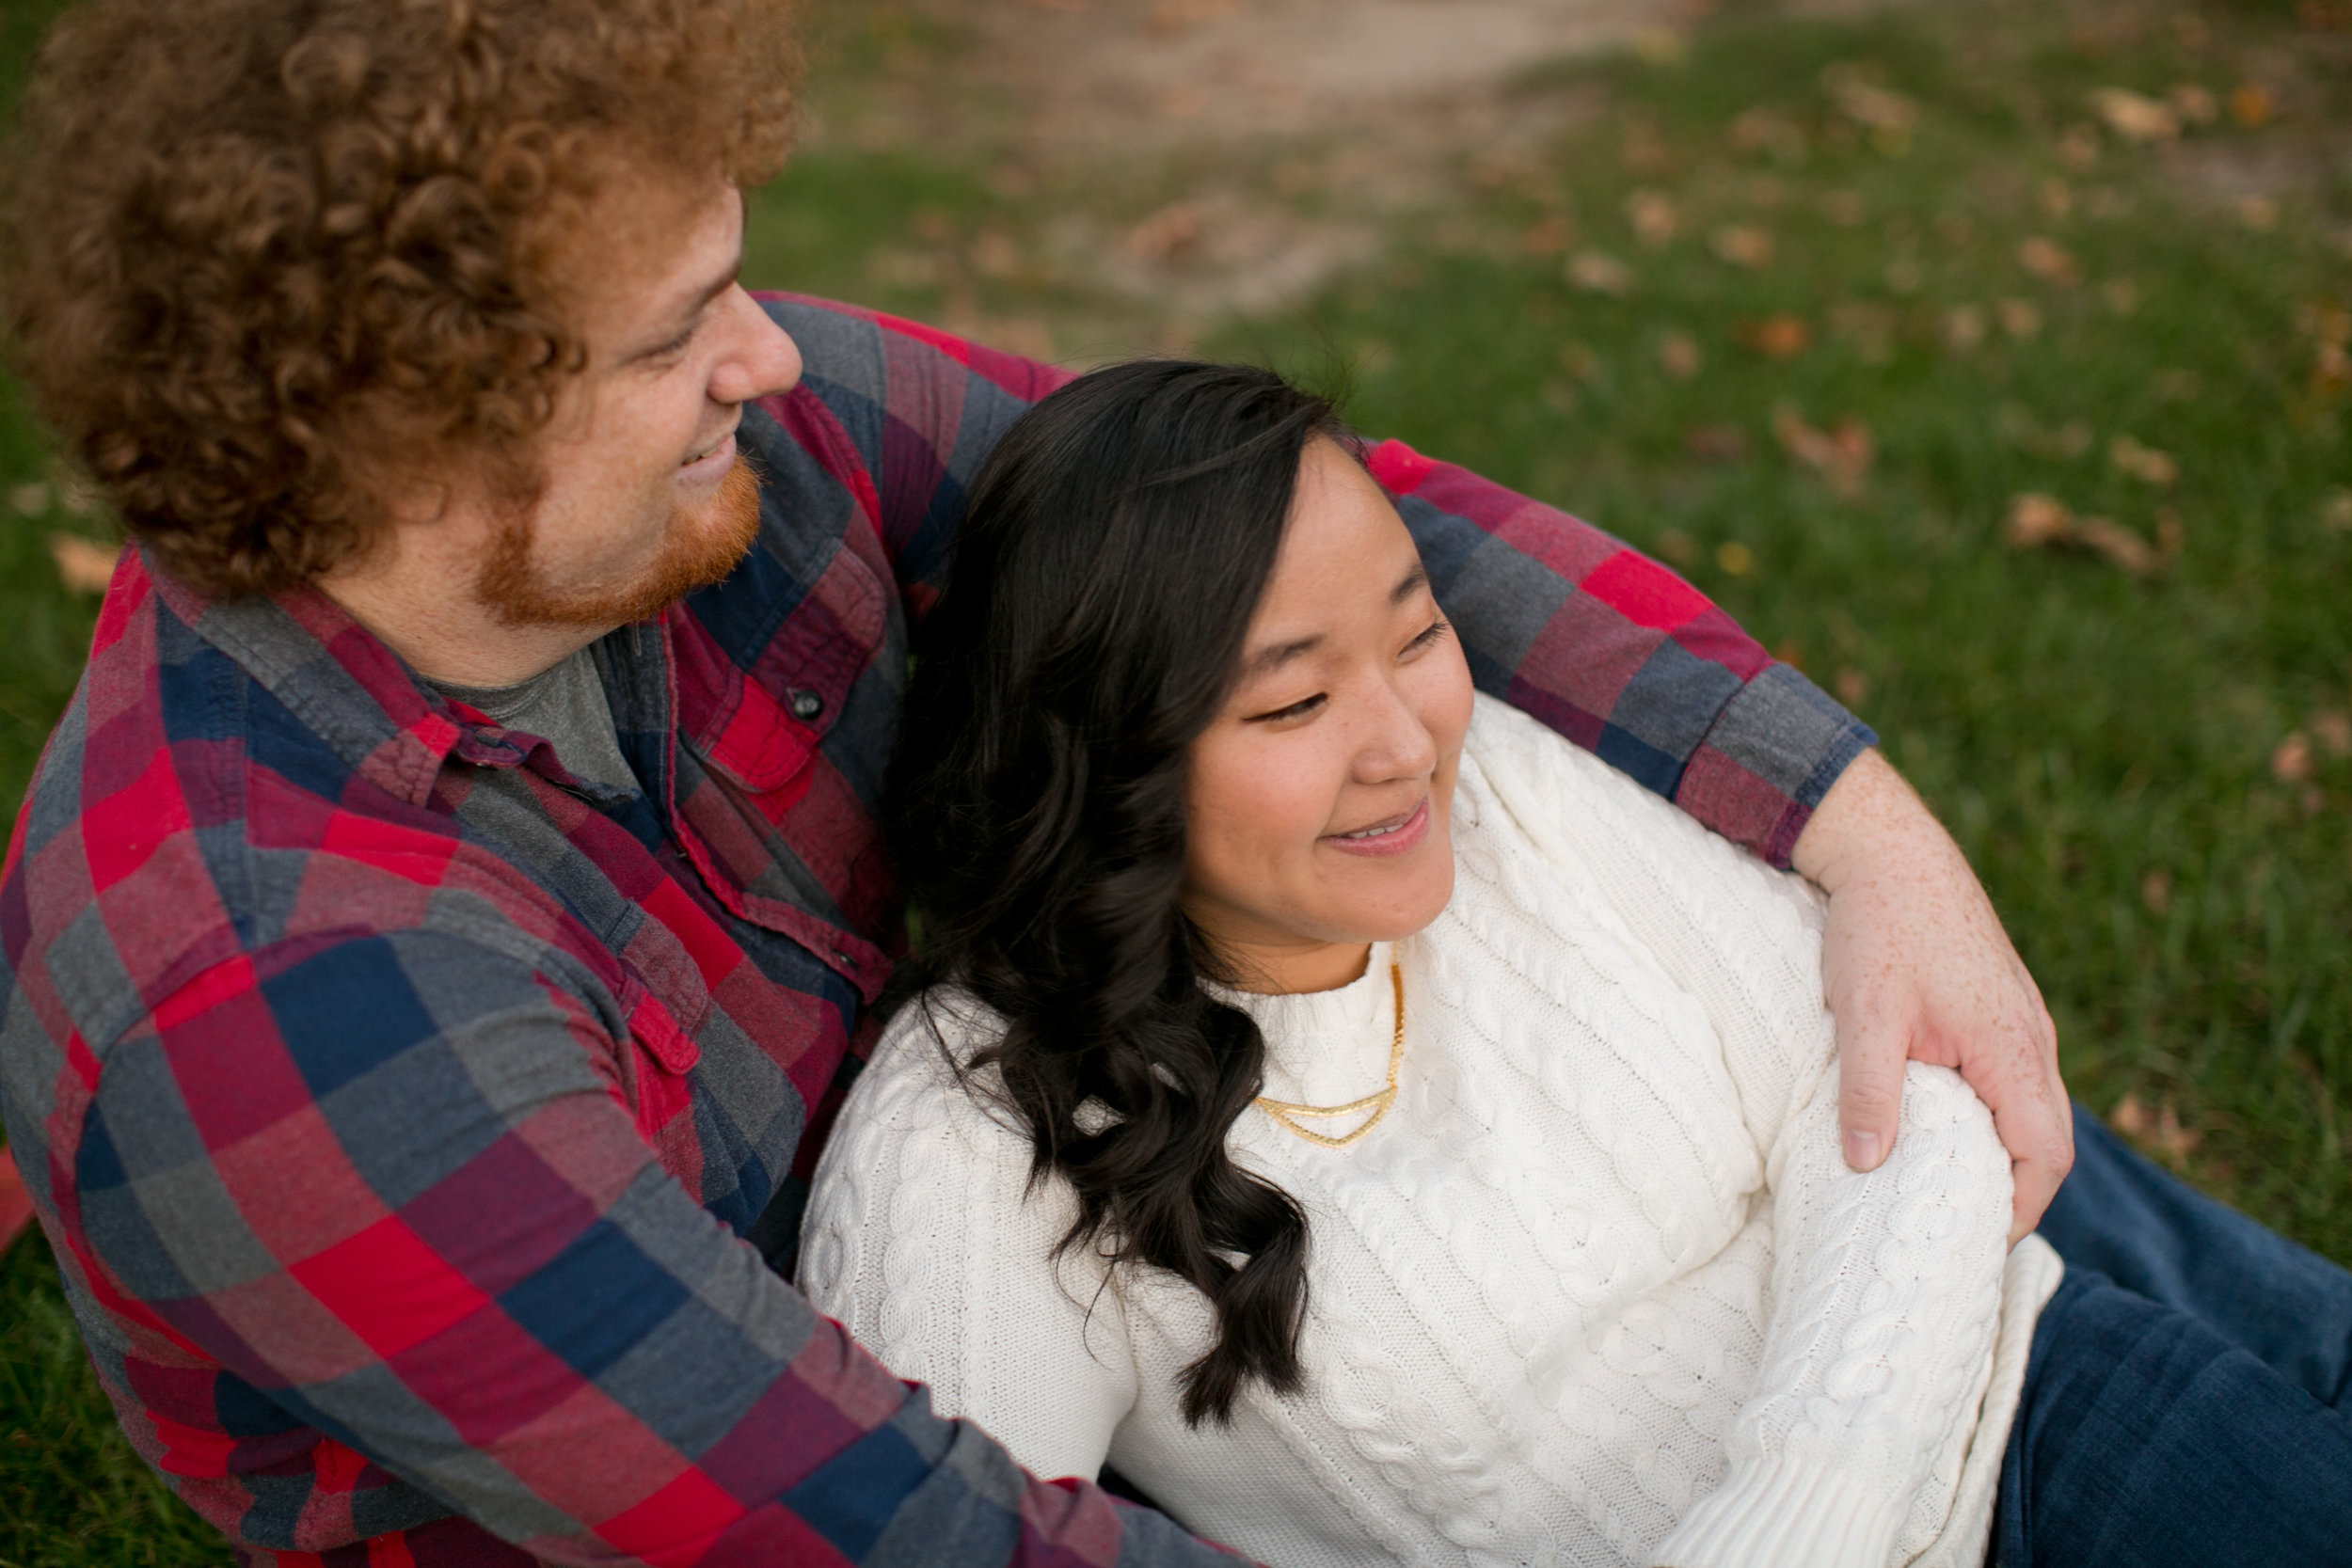 man with curly red hair and asian girl engagement photos